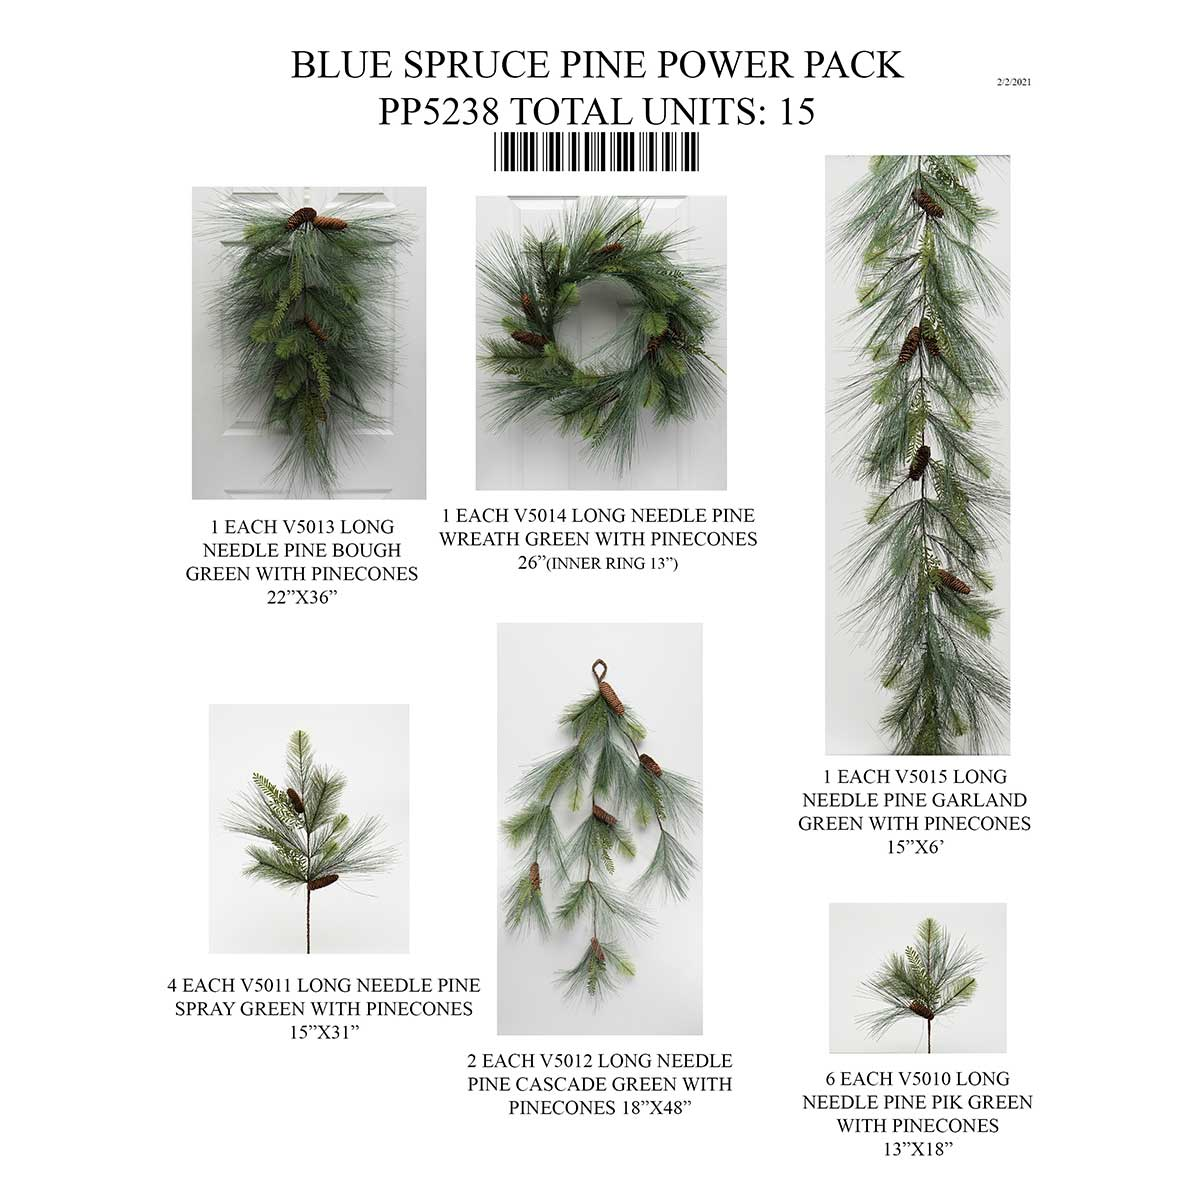 LONG NEEDLE MIXED PINE POWER PACK 15 UNITS PP5238